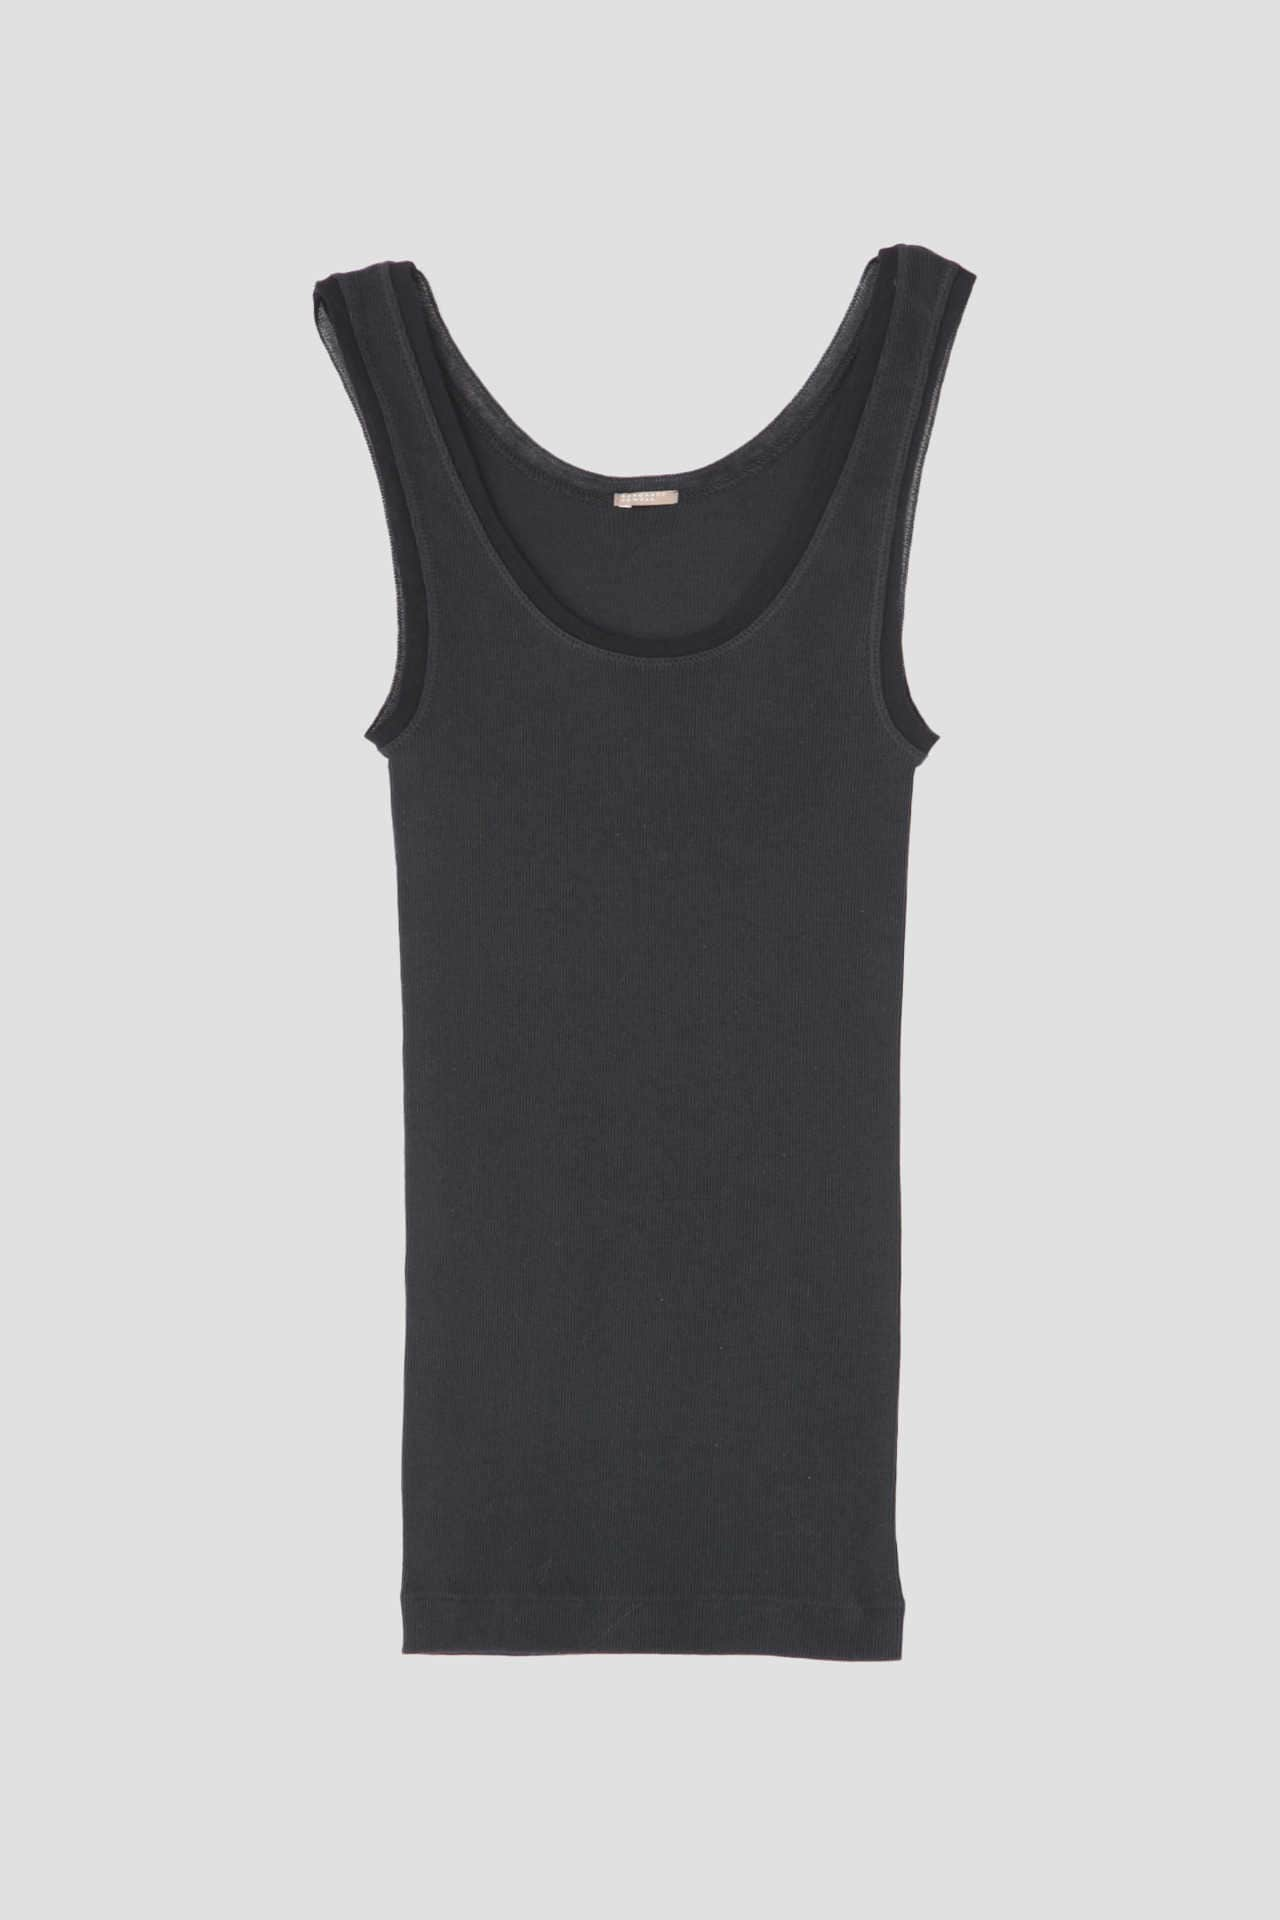 SUPIMA COTTON RIB TANK10